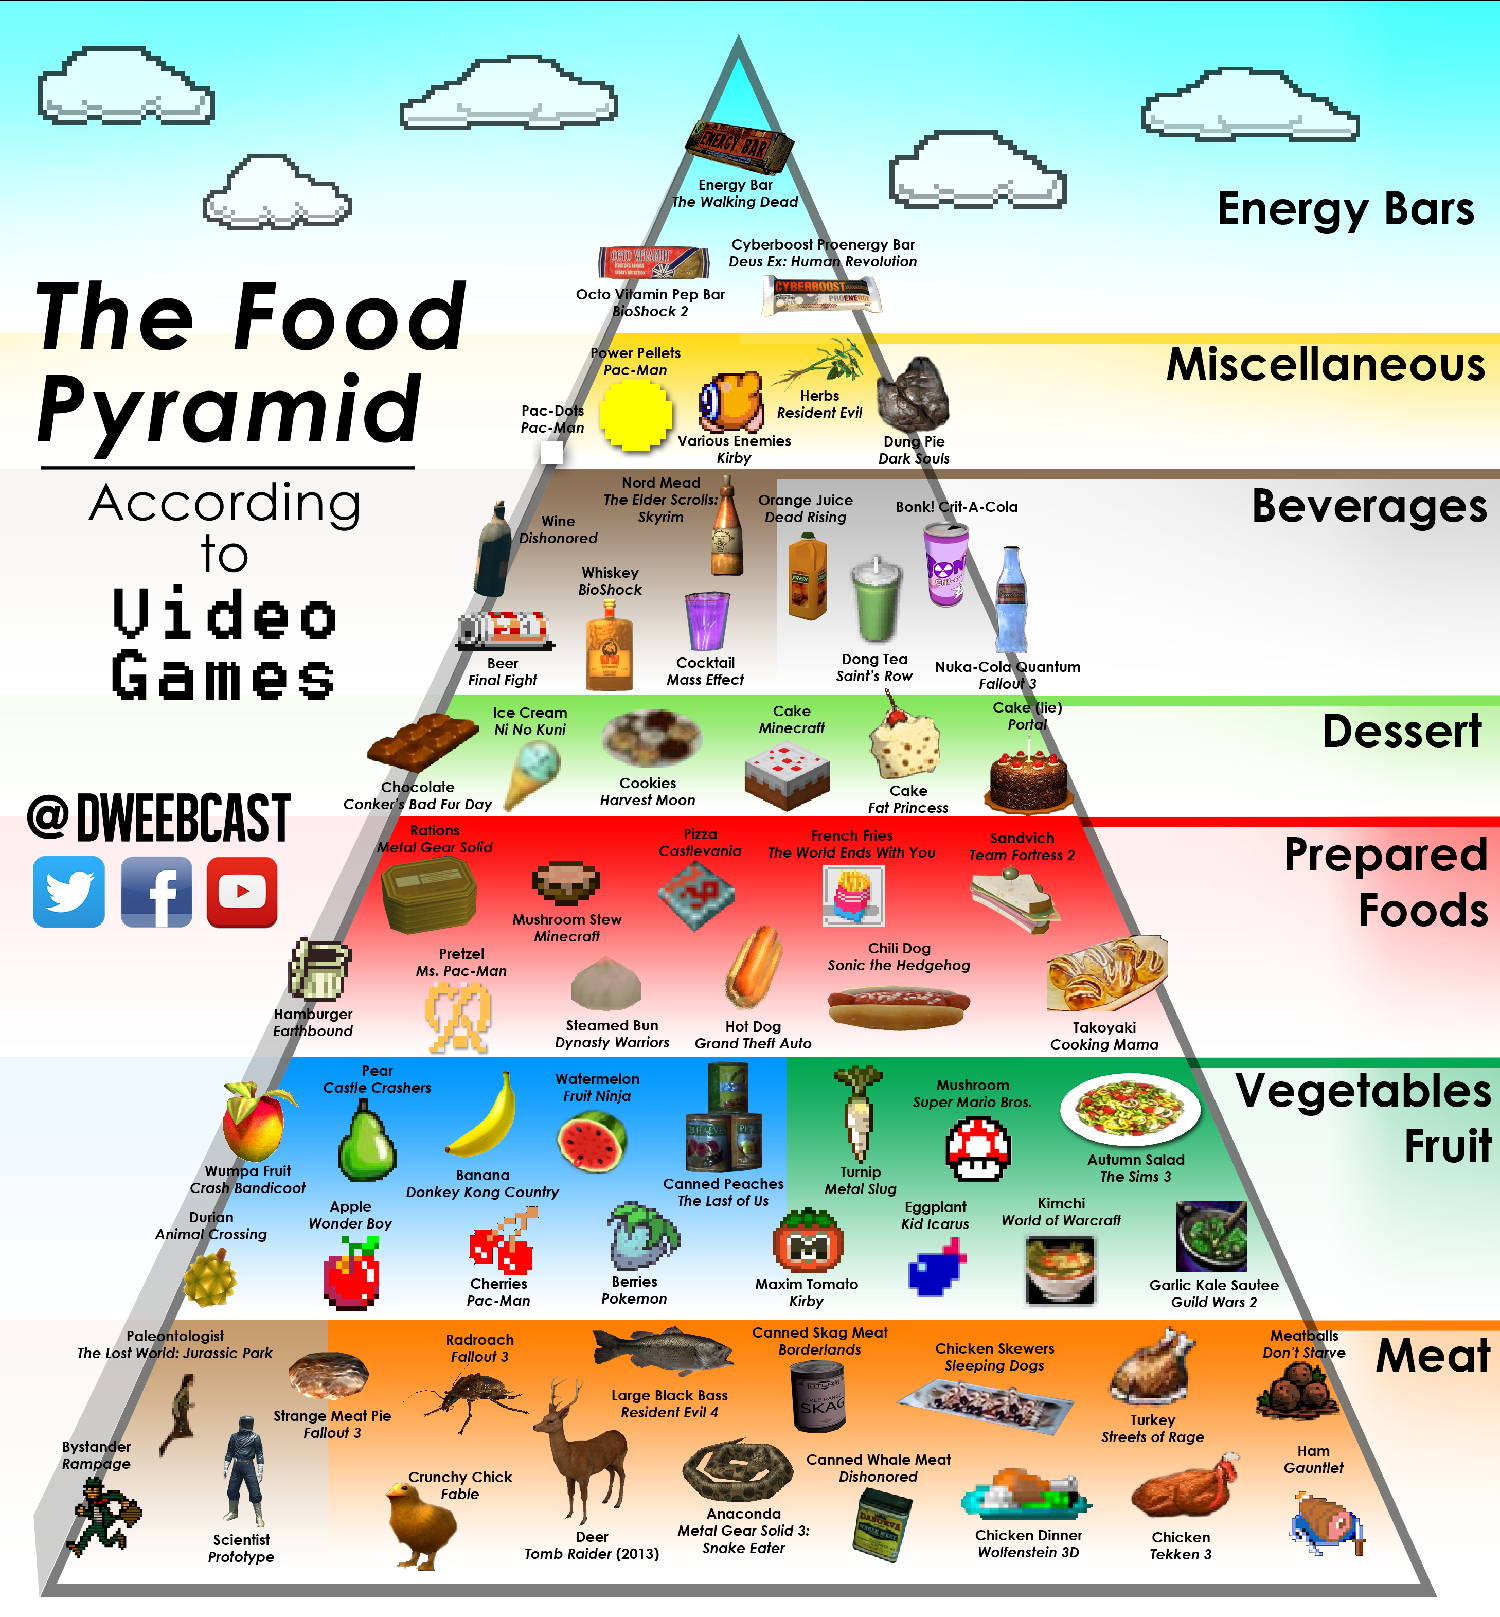 The Food Pyramid According To Video Games